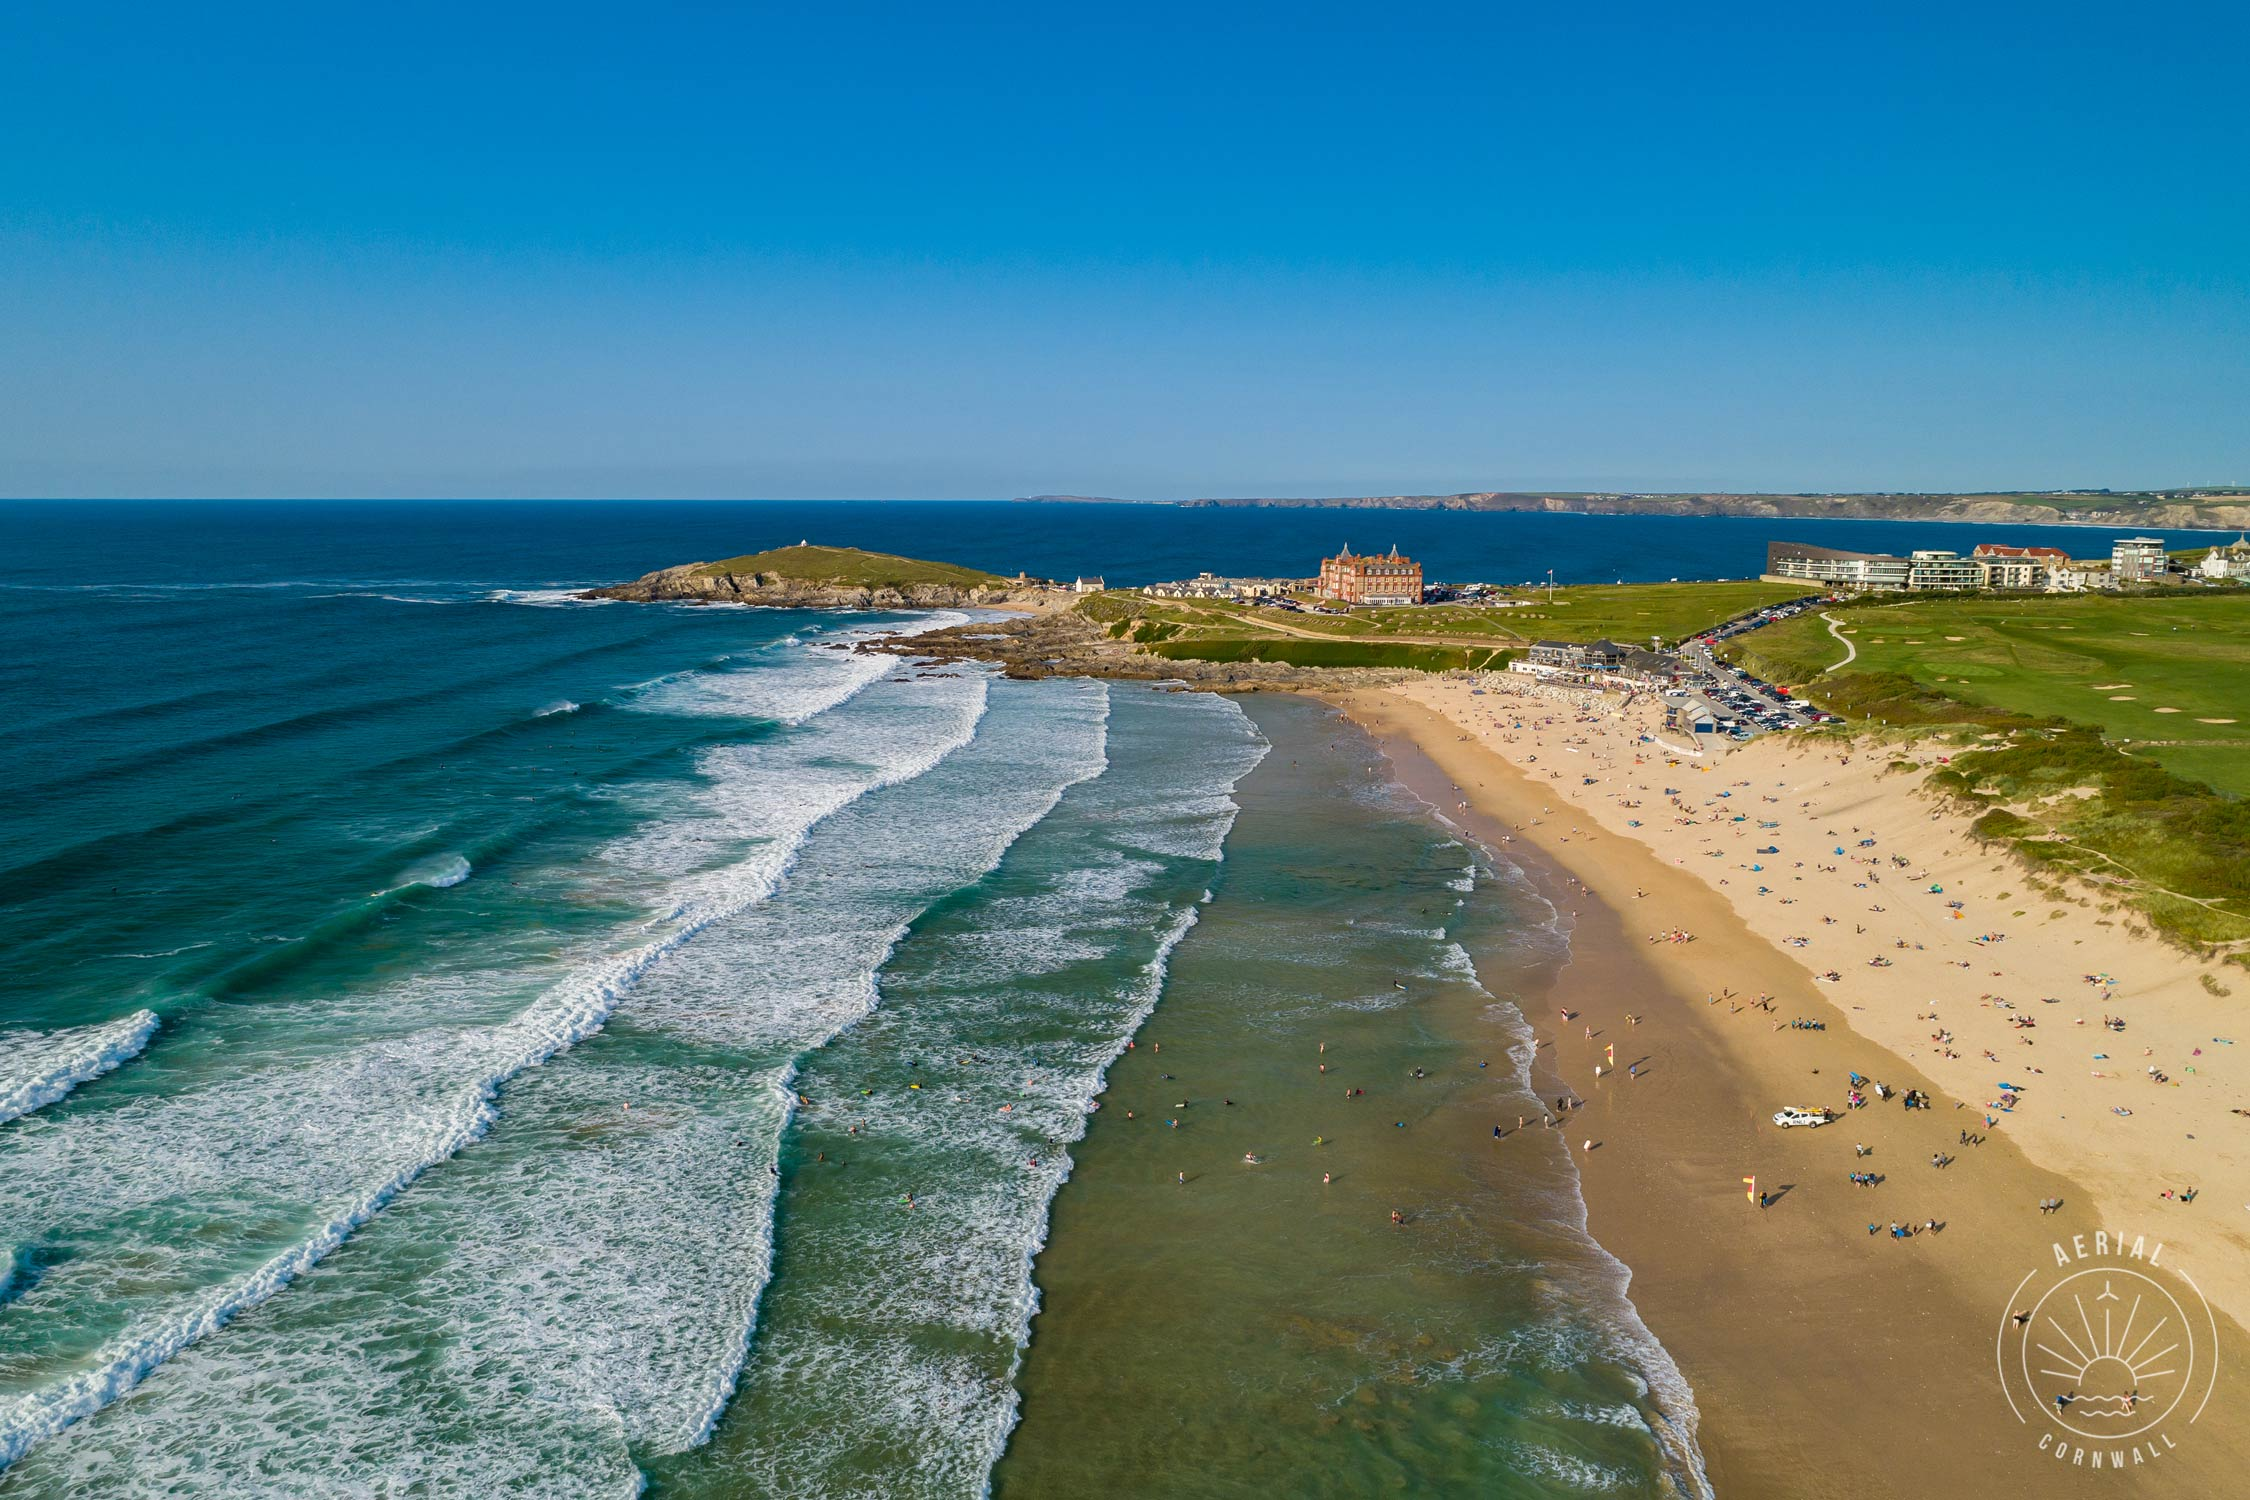 Location: Fistral Beach